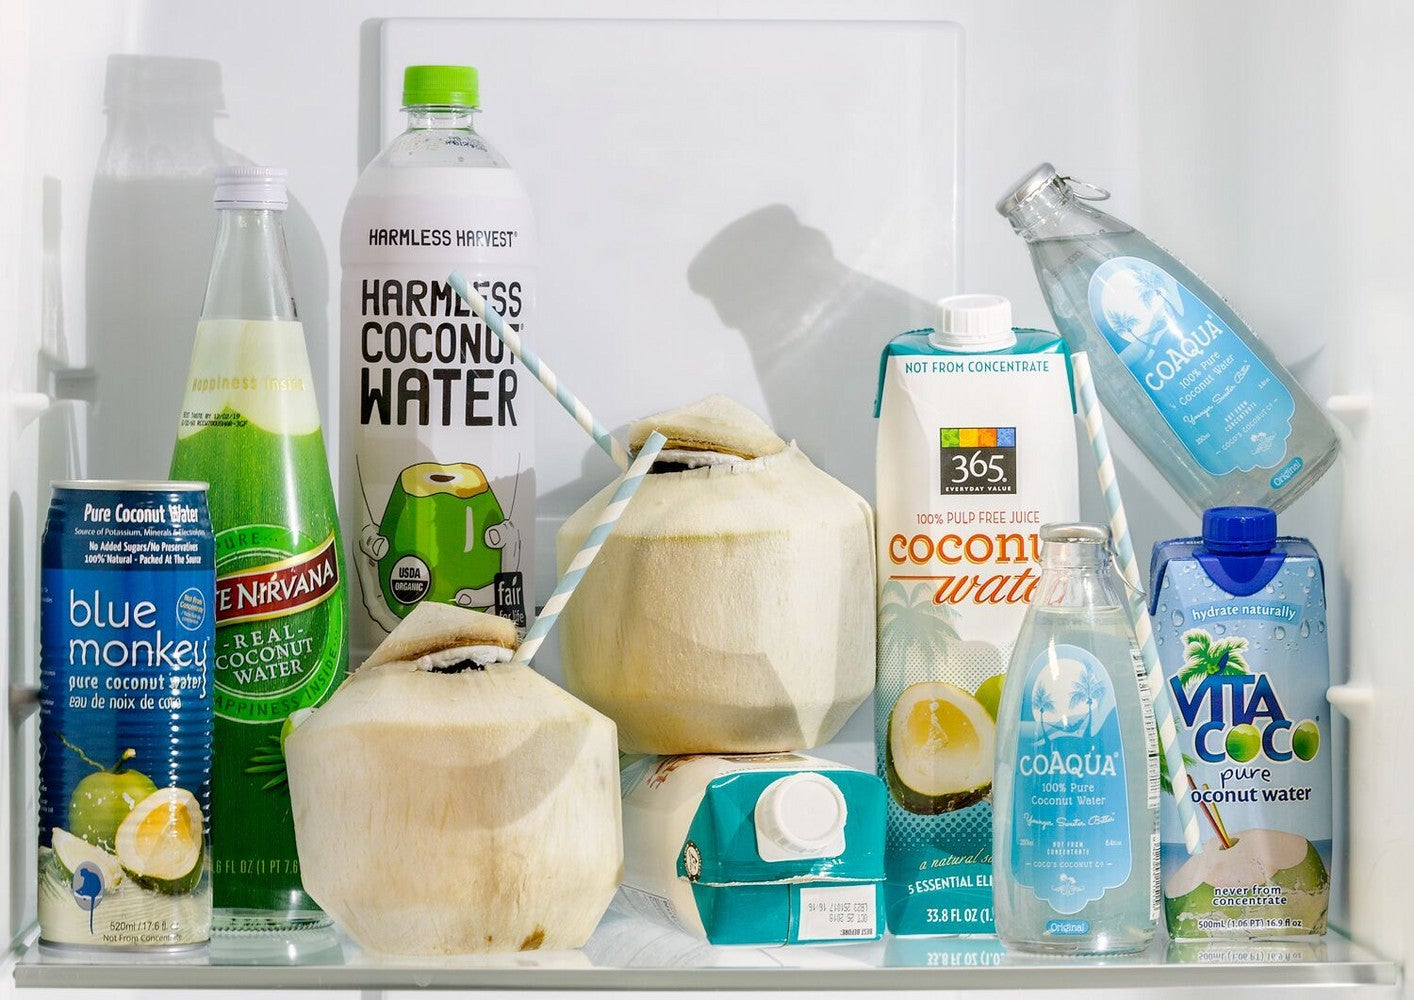 030818_AB_CoconutWaterTasteTest_025_preview.jpeg